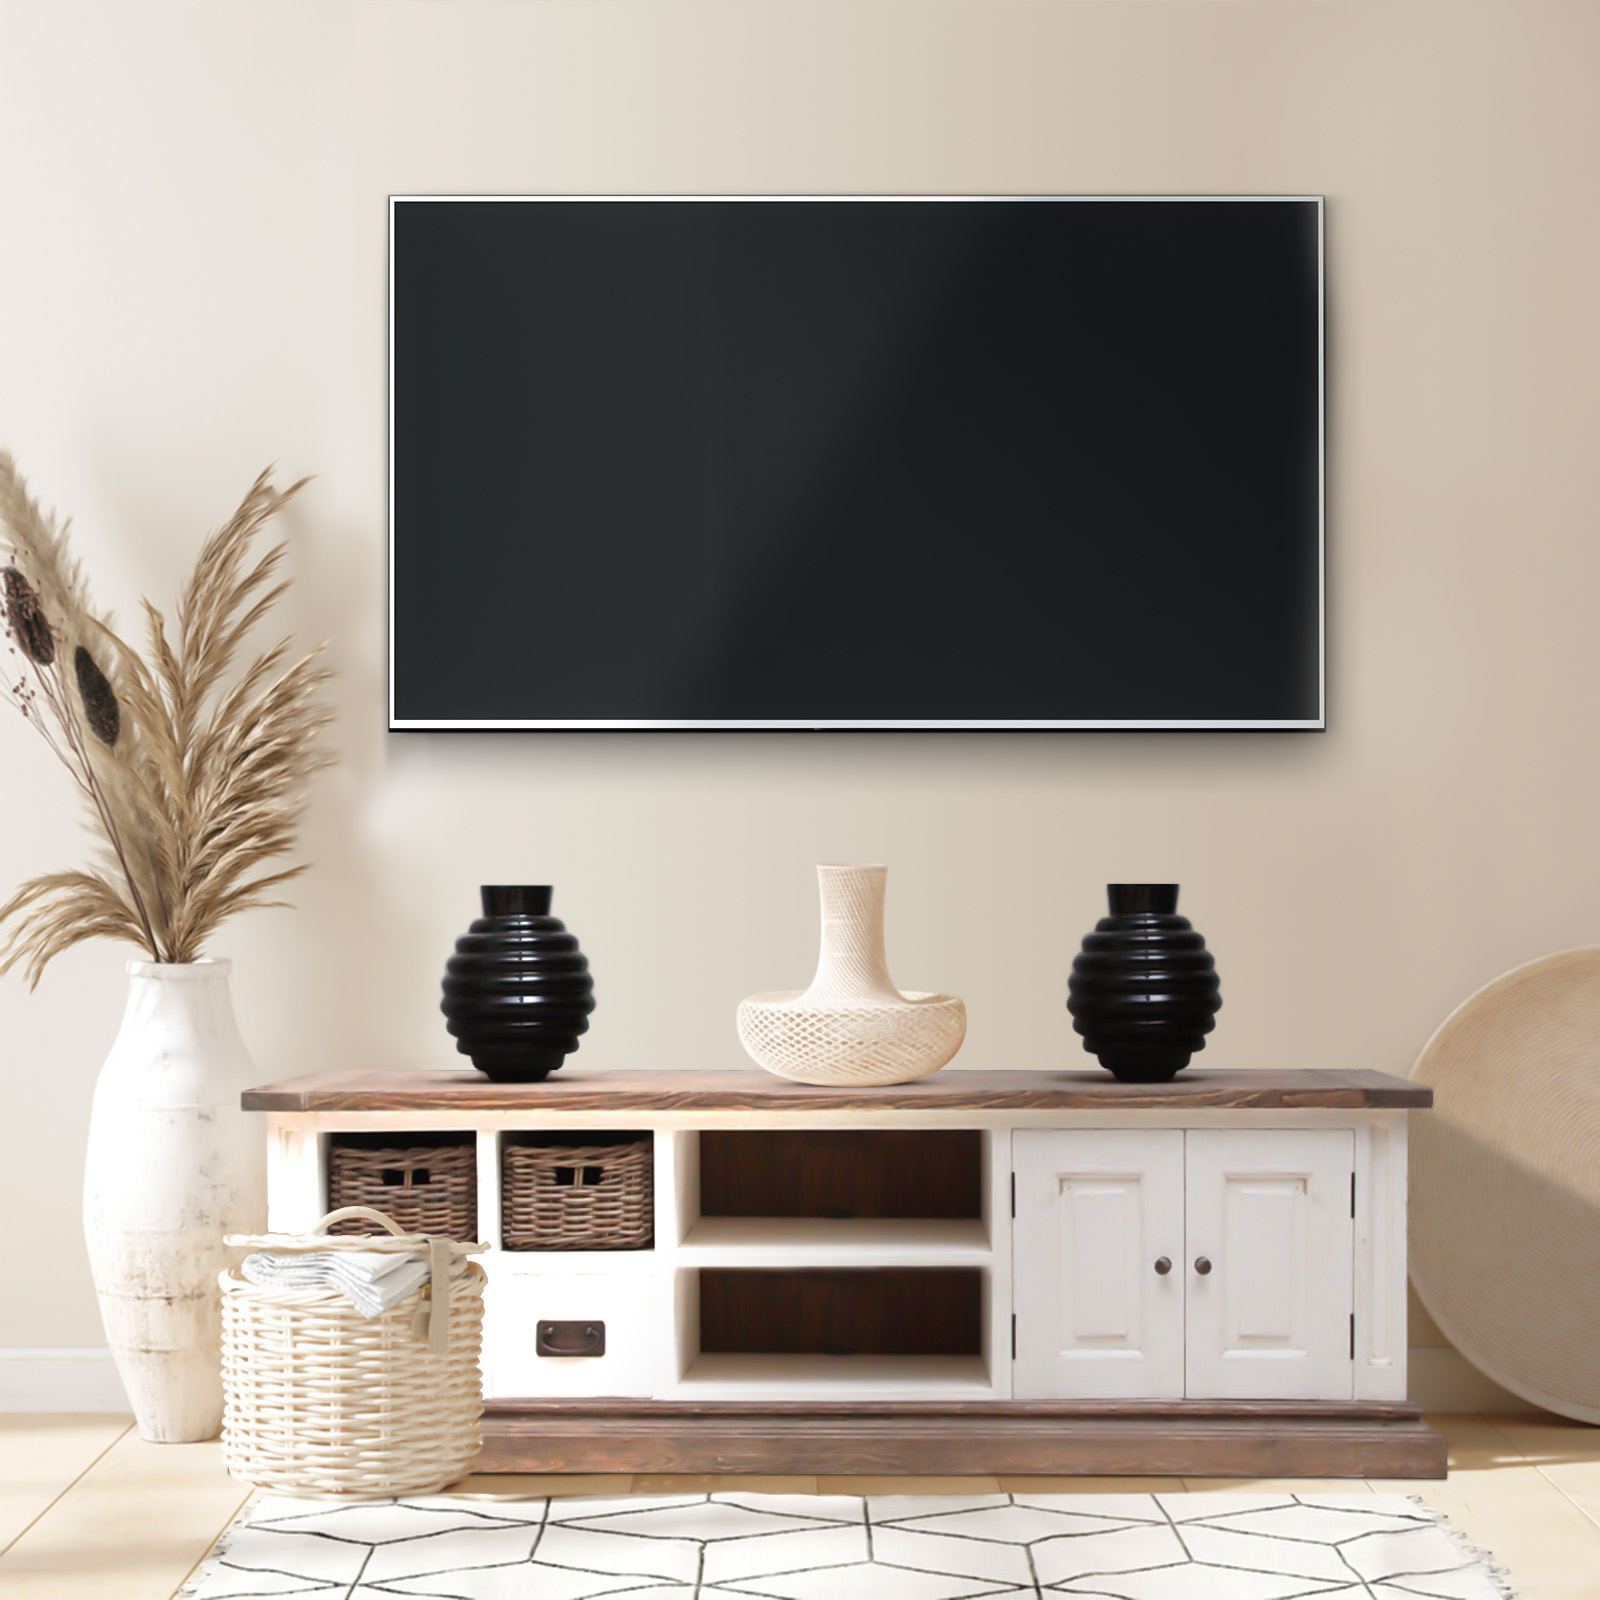 Meuble Tv Campagne Chic - Meuble Tv En Pin Massif Thani Khahomedesign[mjhdah]http://wodmark.com/images/salon-style-campagne-chic-15-meuble-tv-grand-siecle-120-cm-en-bois-blanc-cass233-1000×1000.jpg